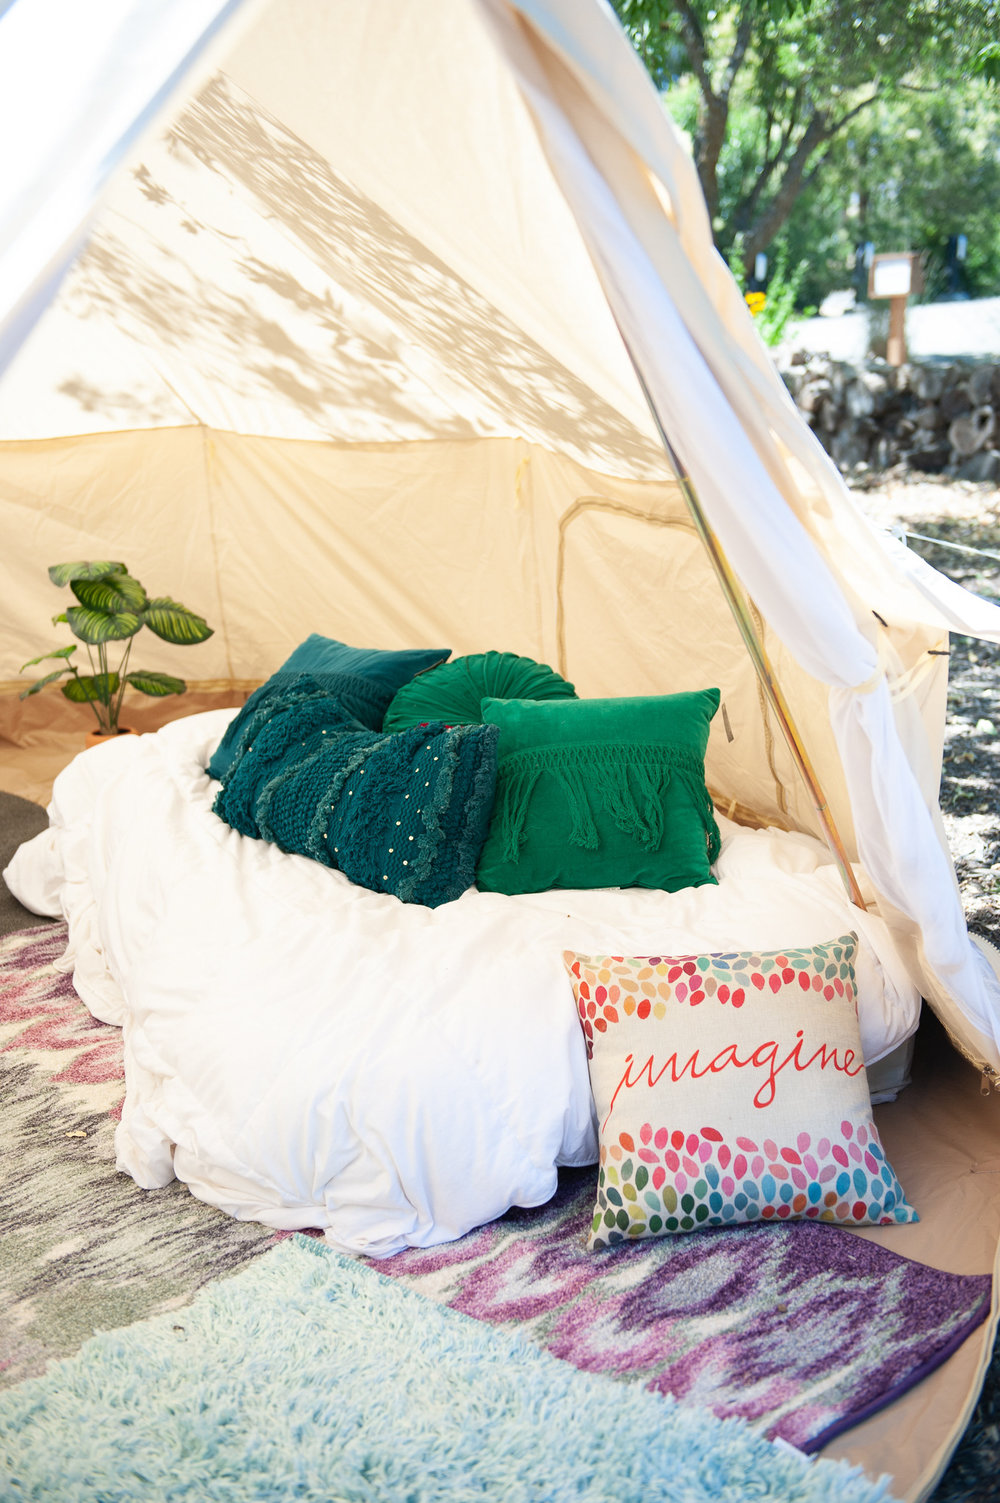 Creative Excursion Glamping Tents